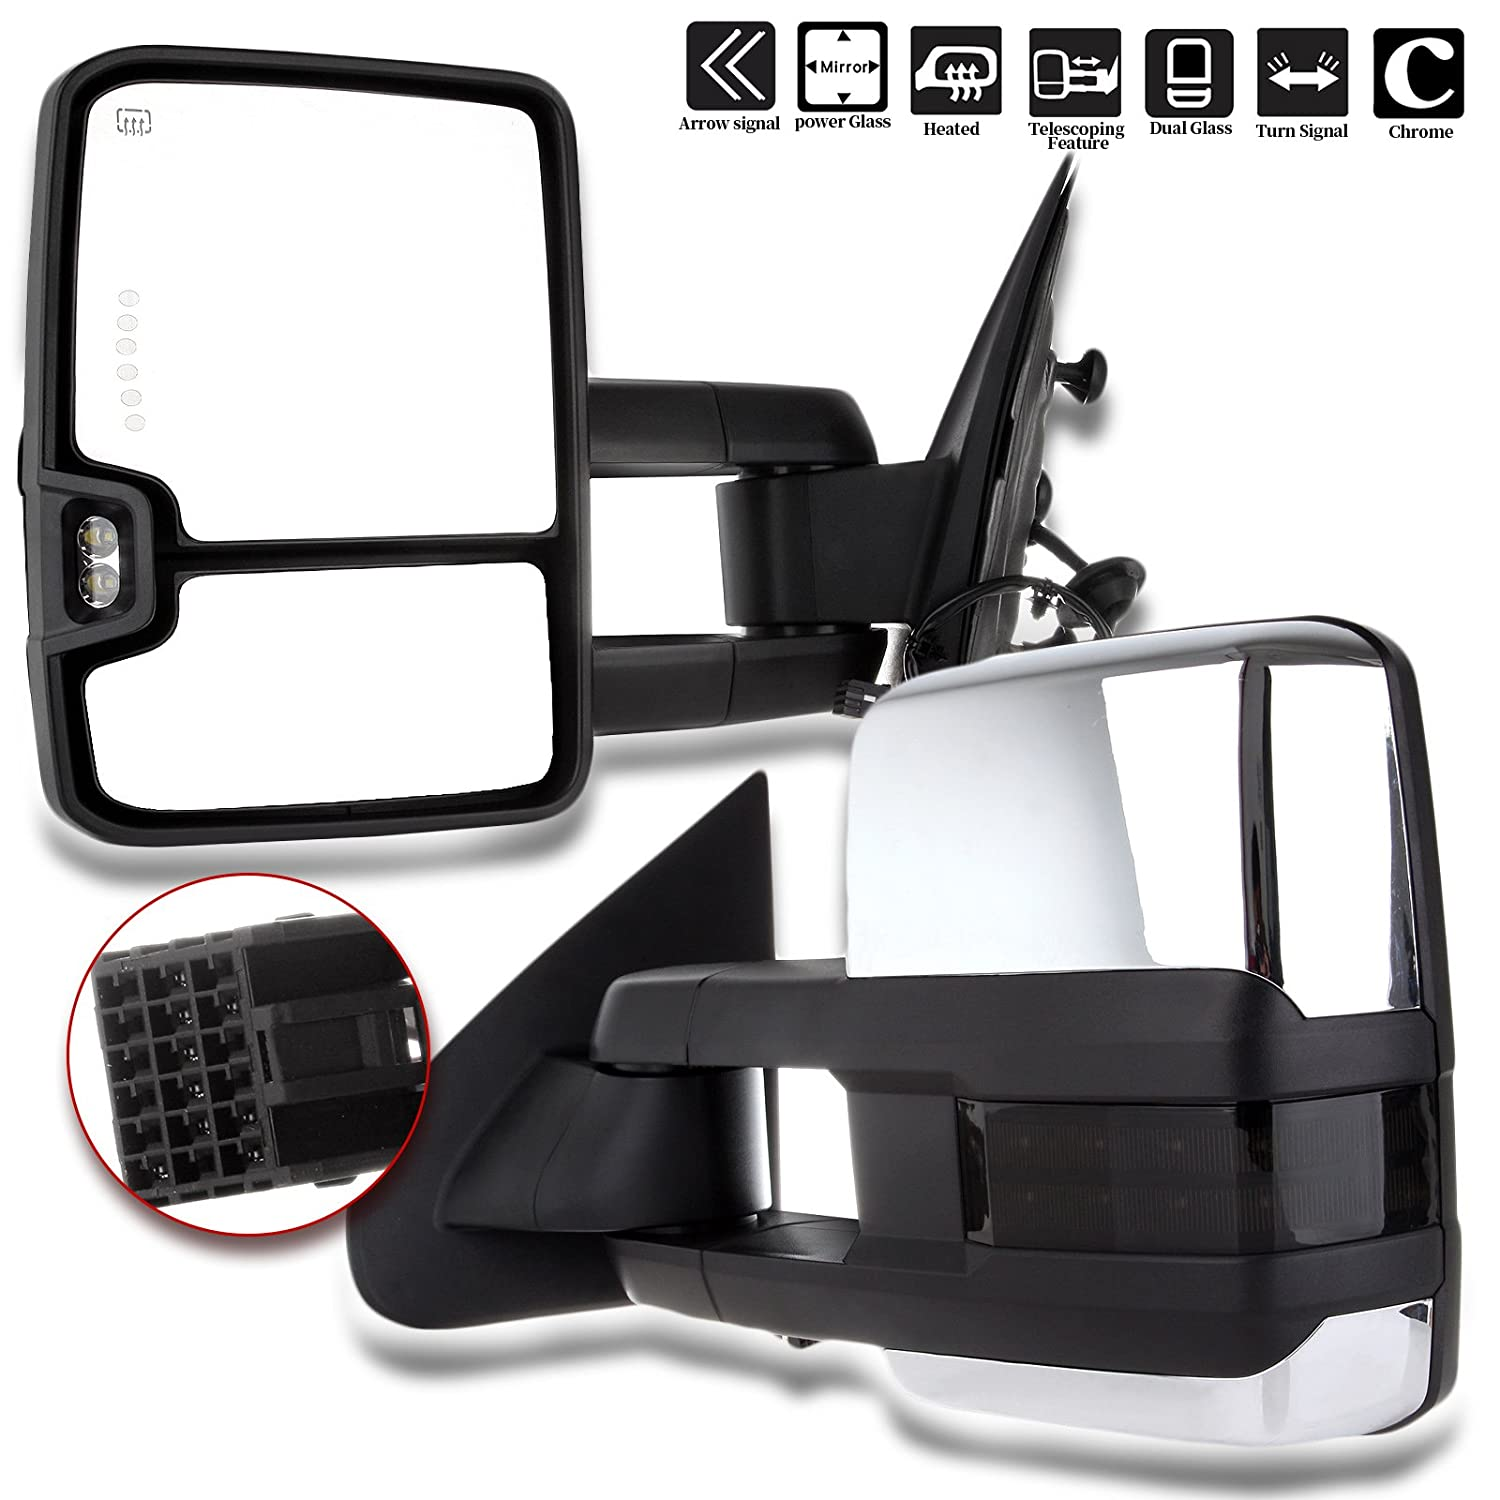 Scitoo Fit Chevy Gmc Towing Mirrors Chrome Rear View Gm 2000 Wiring Harness Mirror 2014 2018 Silverado Sierra 1500 2015